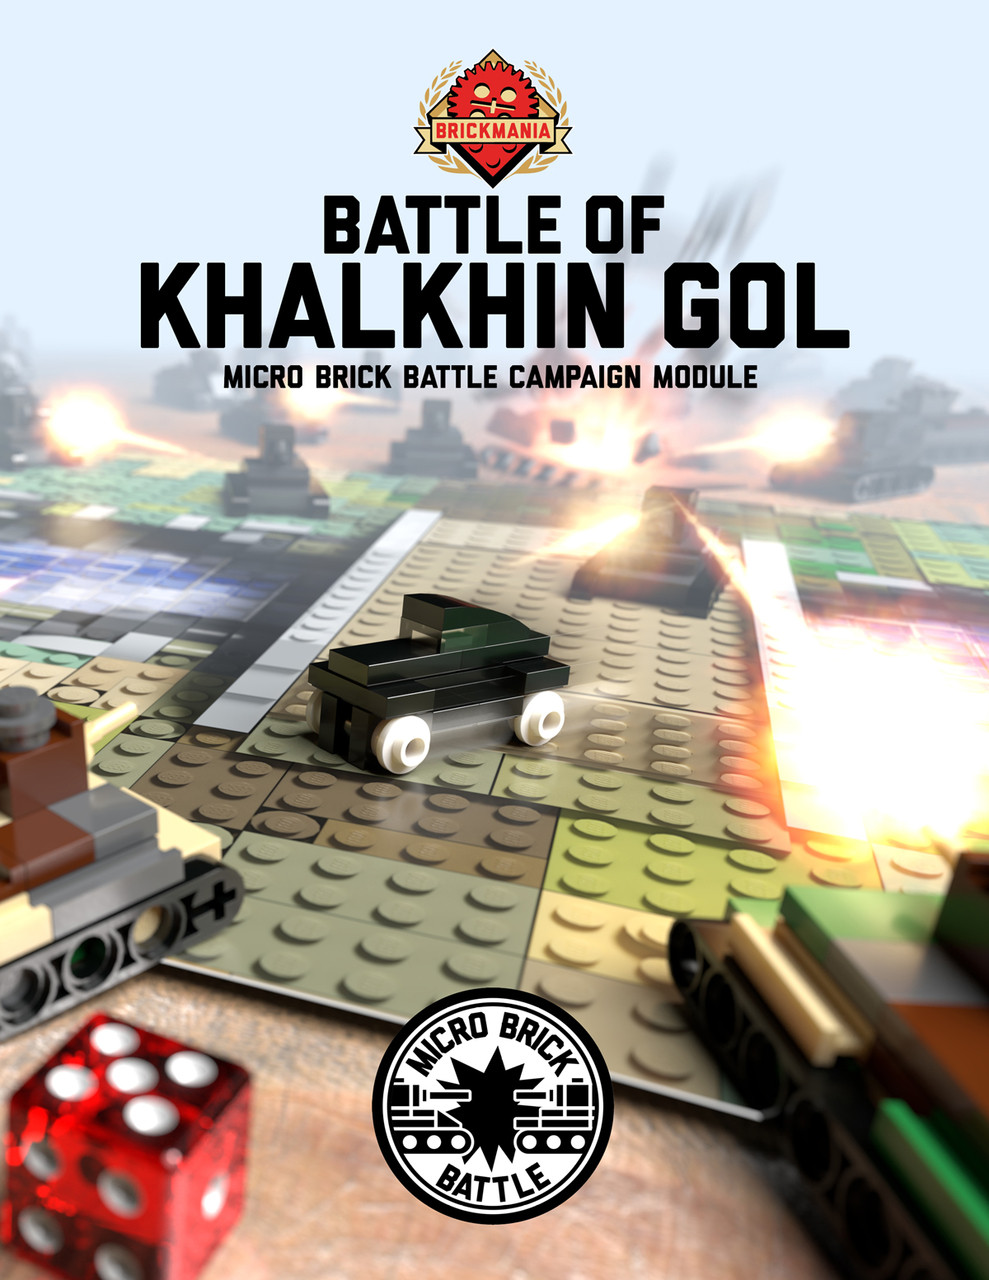 Battle of Khalkhin Gol - Micro Brick Battle Campaign Module